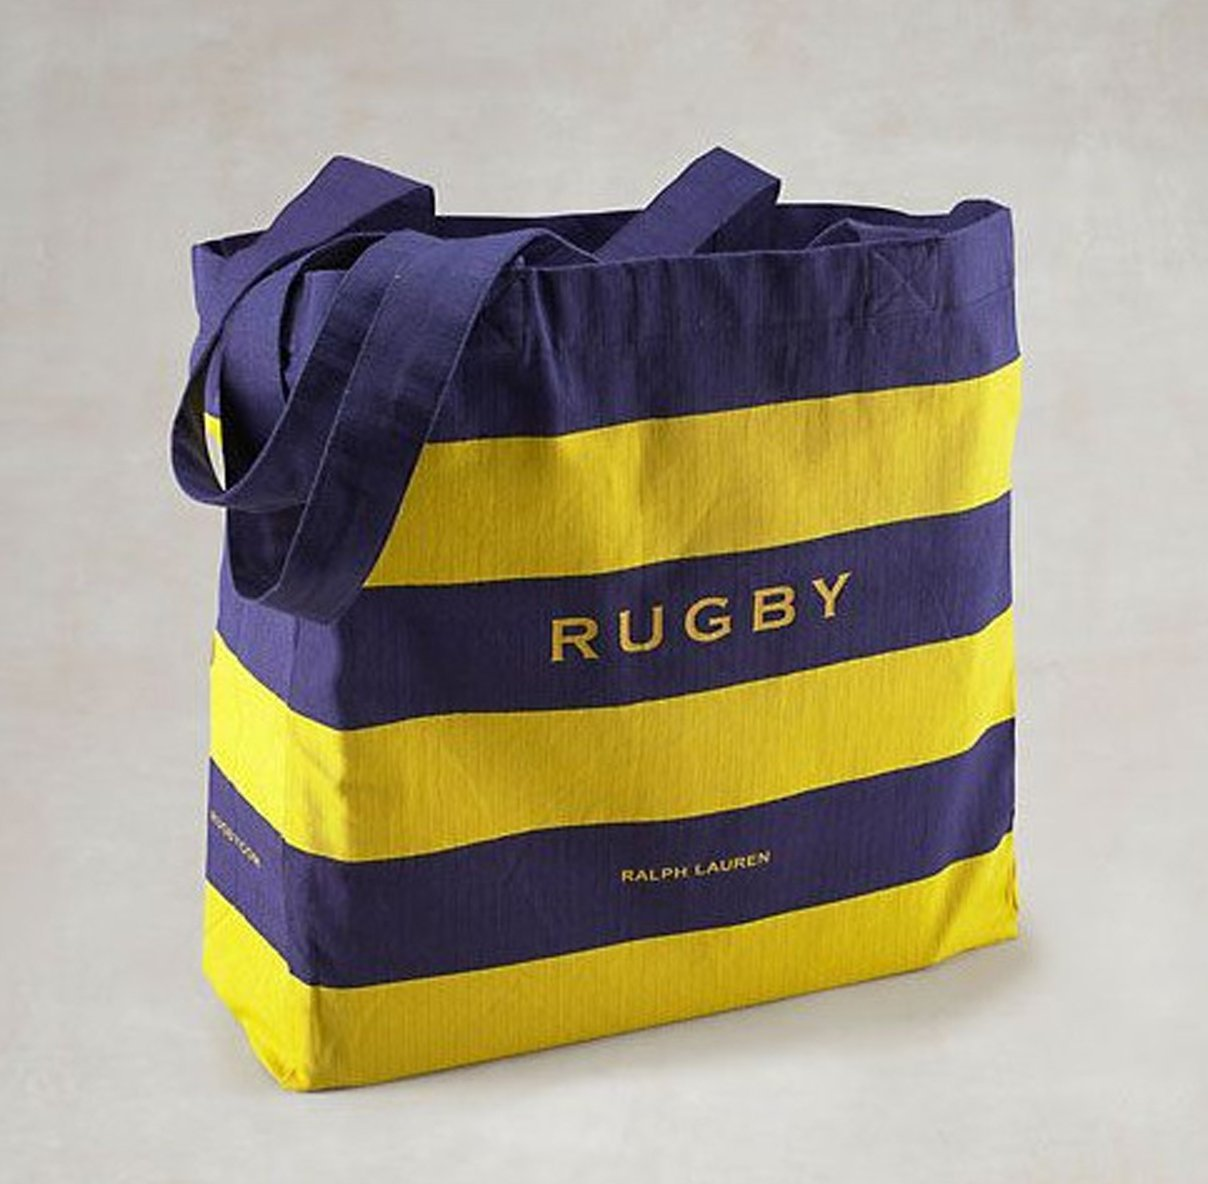 ralph lauren rugby tote bag purple and green polo shirt